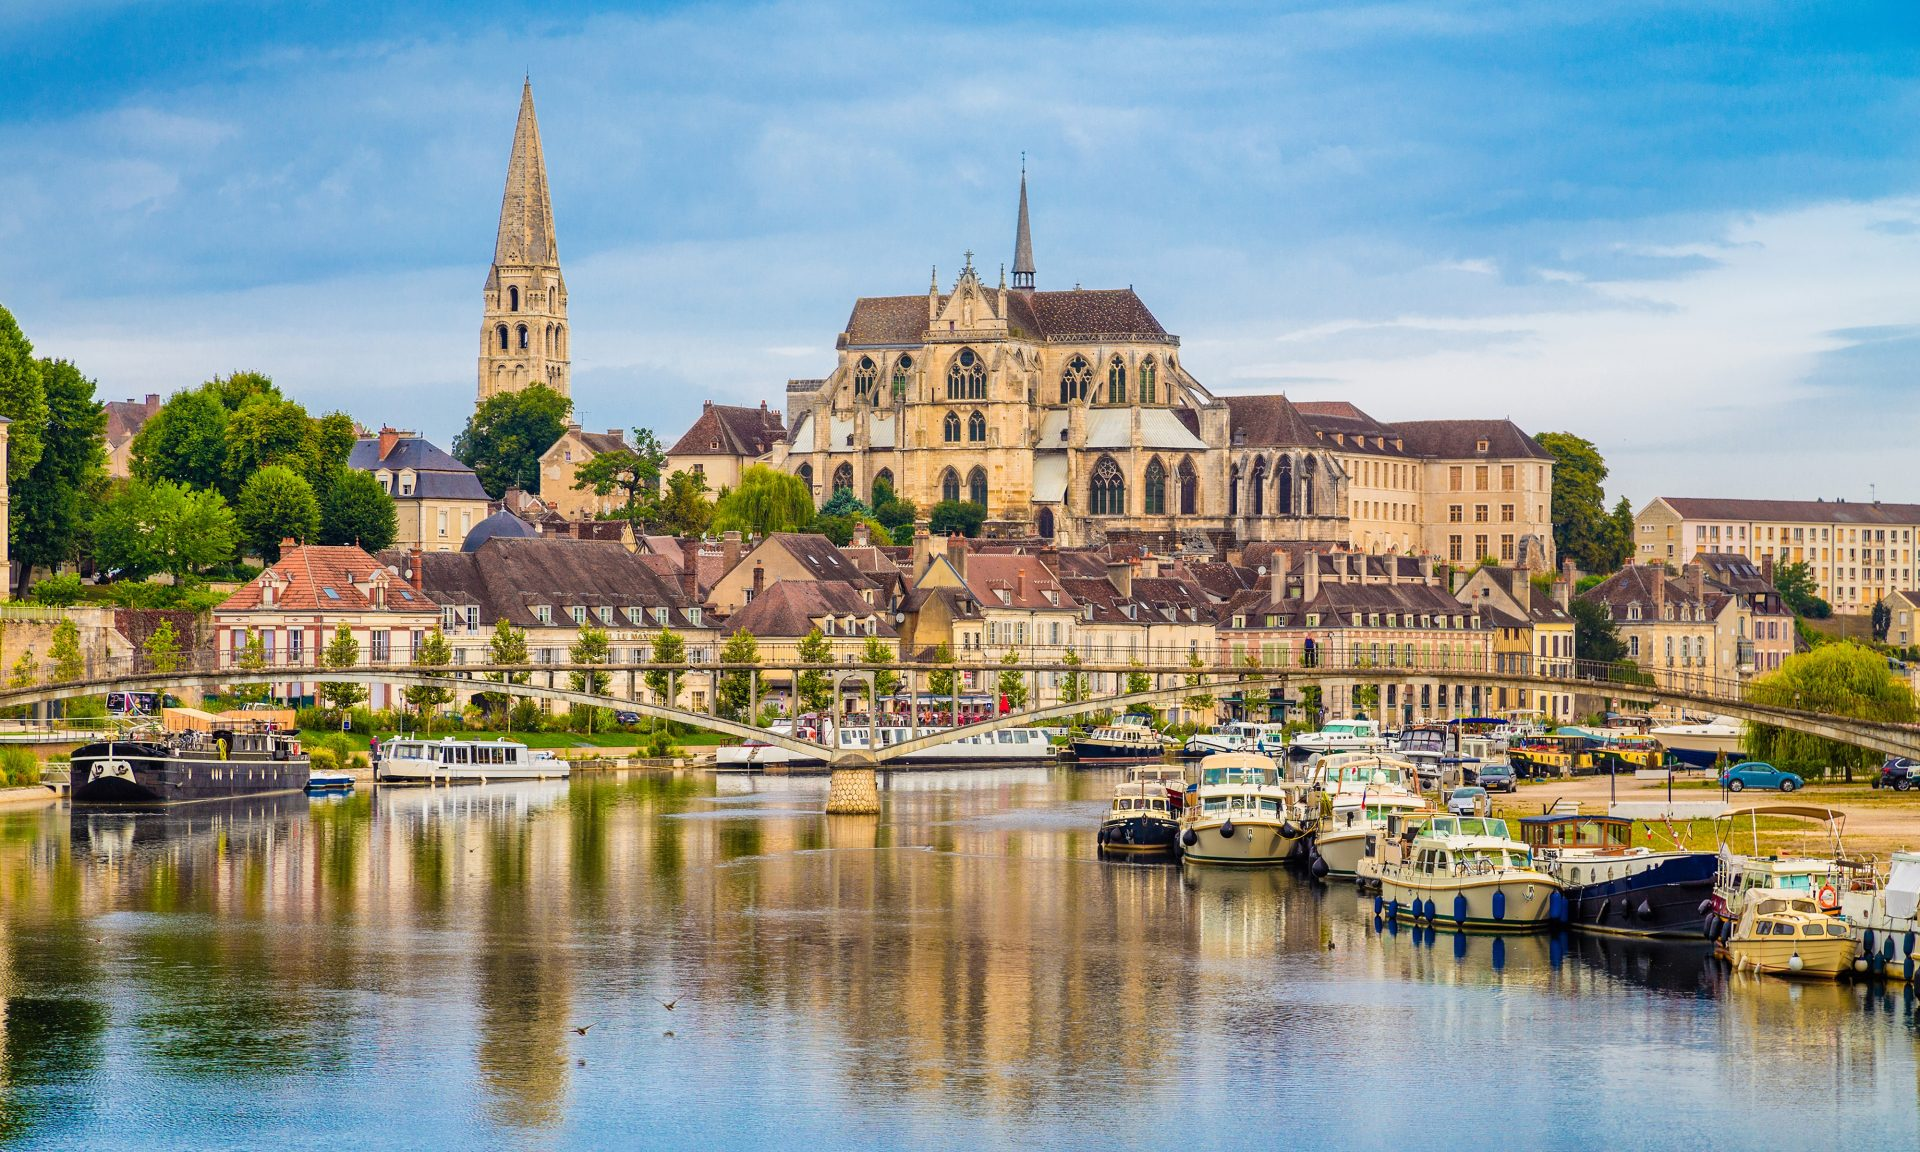 The historic town of Auxerre across the Yonne river in Burgundy